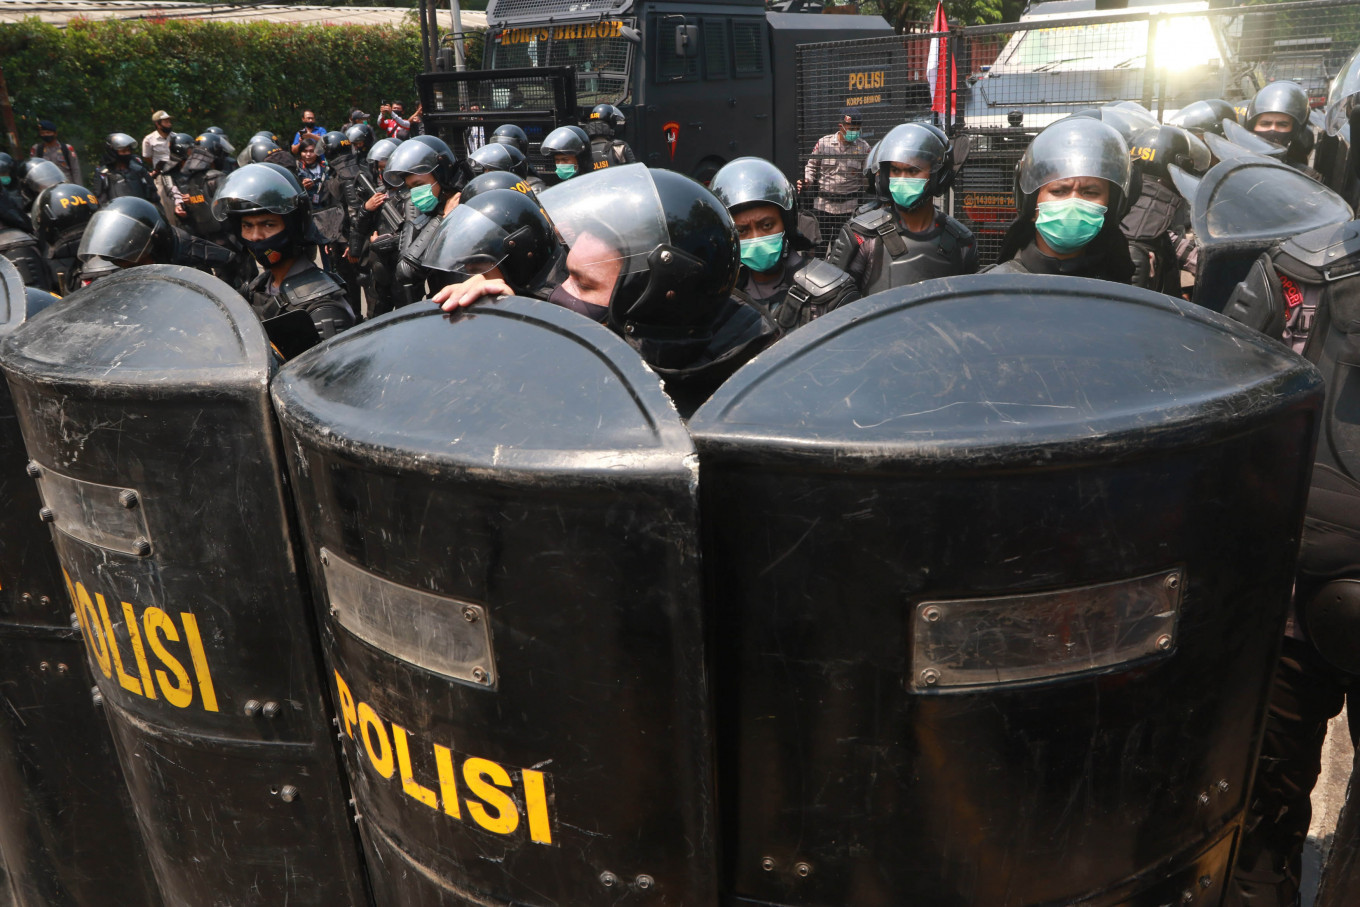 Body shield: Police officers use their shields to form a riot line during a protest on Wednesday, October 7.2020 organized by the Tangerang Workers Alliance on Jl. Daan Mogot in Tangerang, Banten. Nationwide protests have been held from Tuesday to Thursday since the Job Creation Law received final approval from the House of Representatives on Monday. JP/Dhoni Setiawan